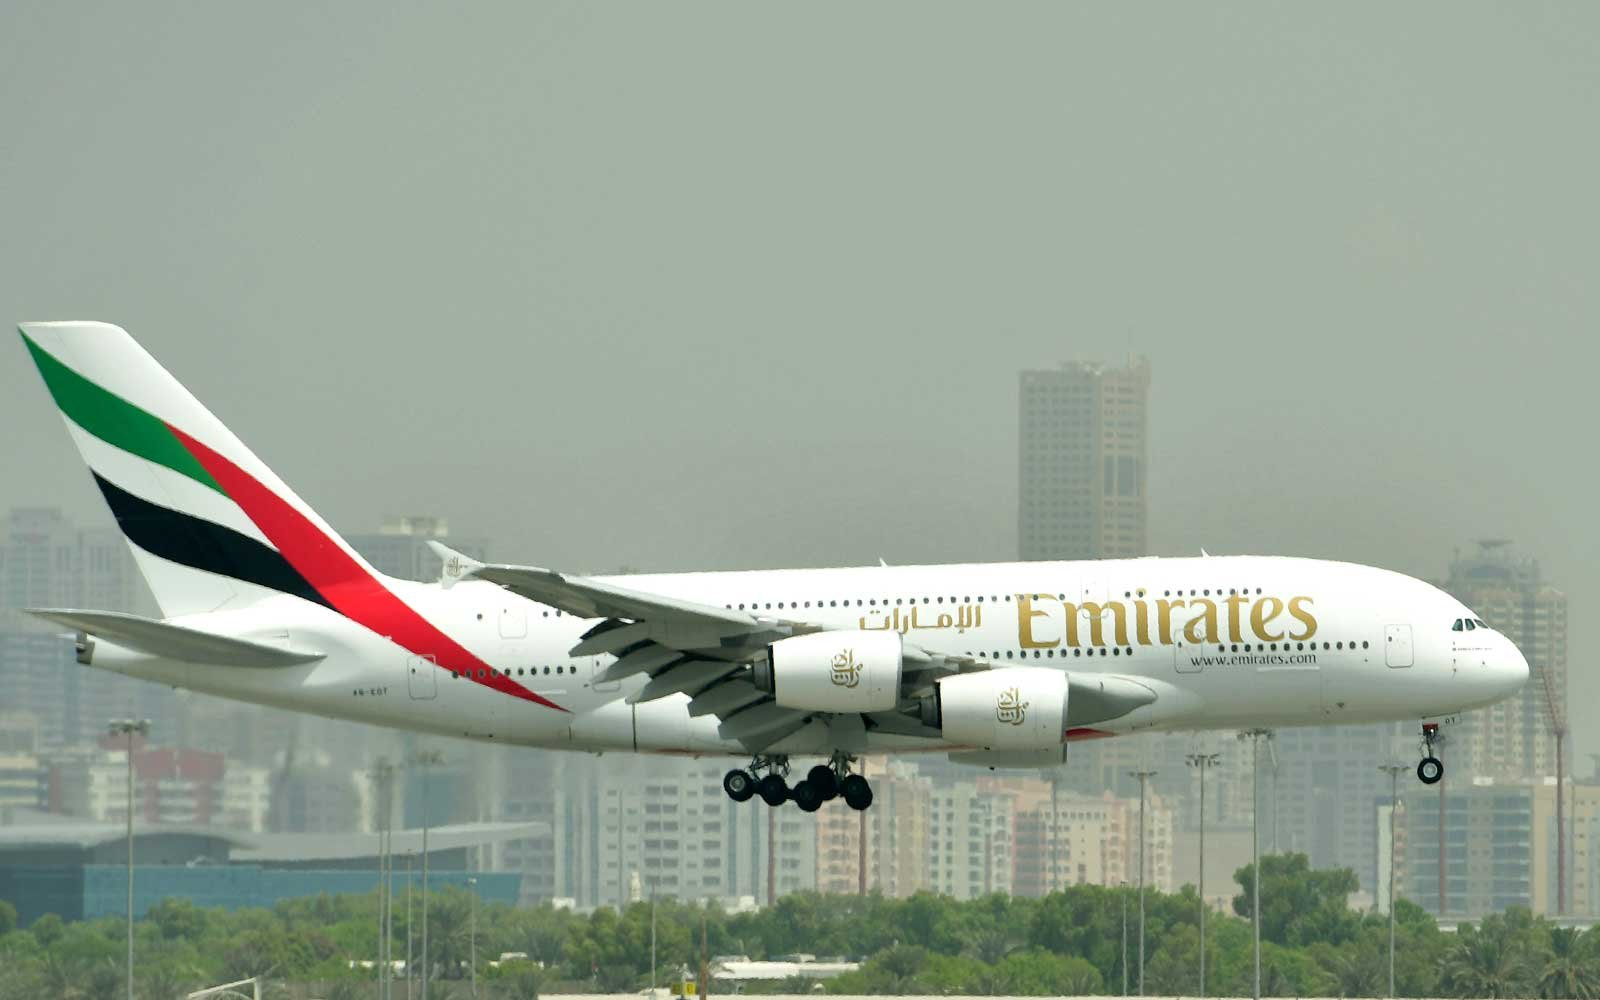 Airbus A380 of Emirates landing at the tarmac at Dubai's International Airport